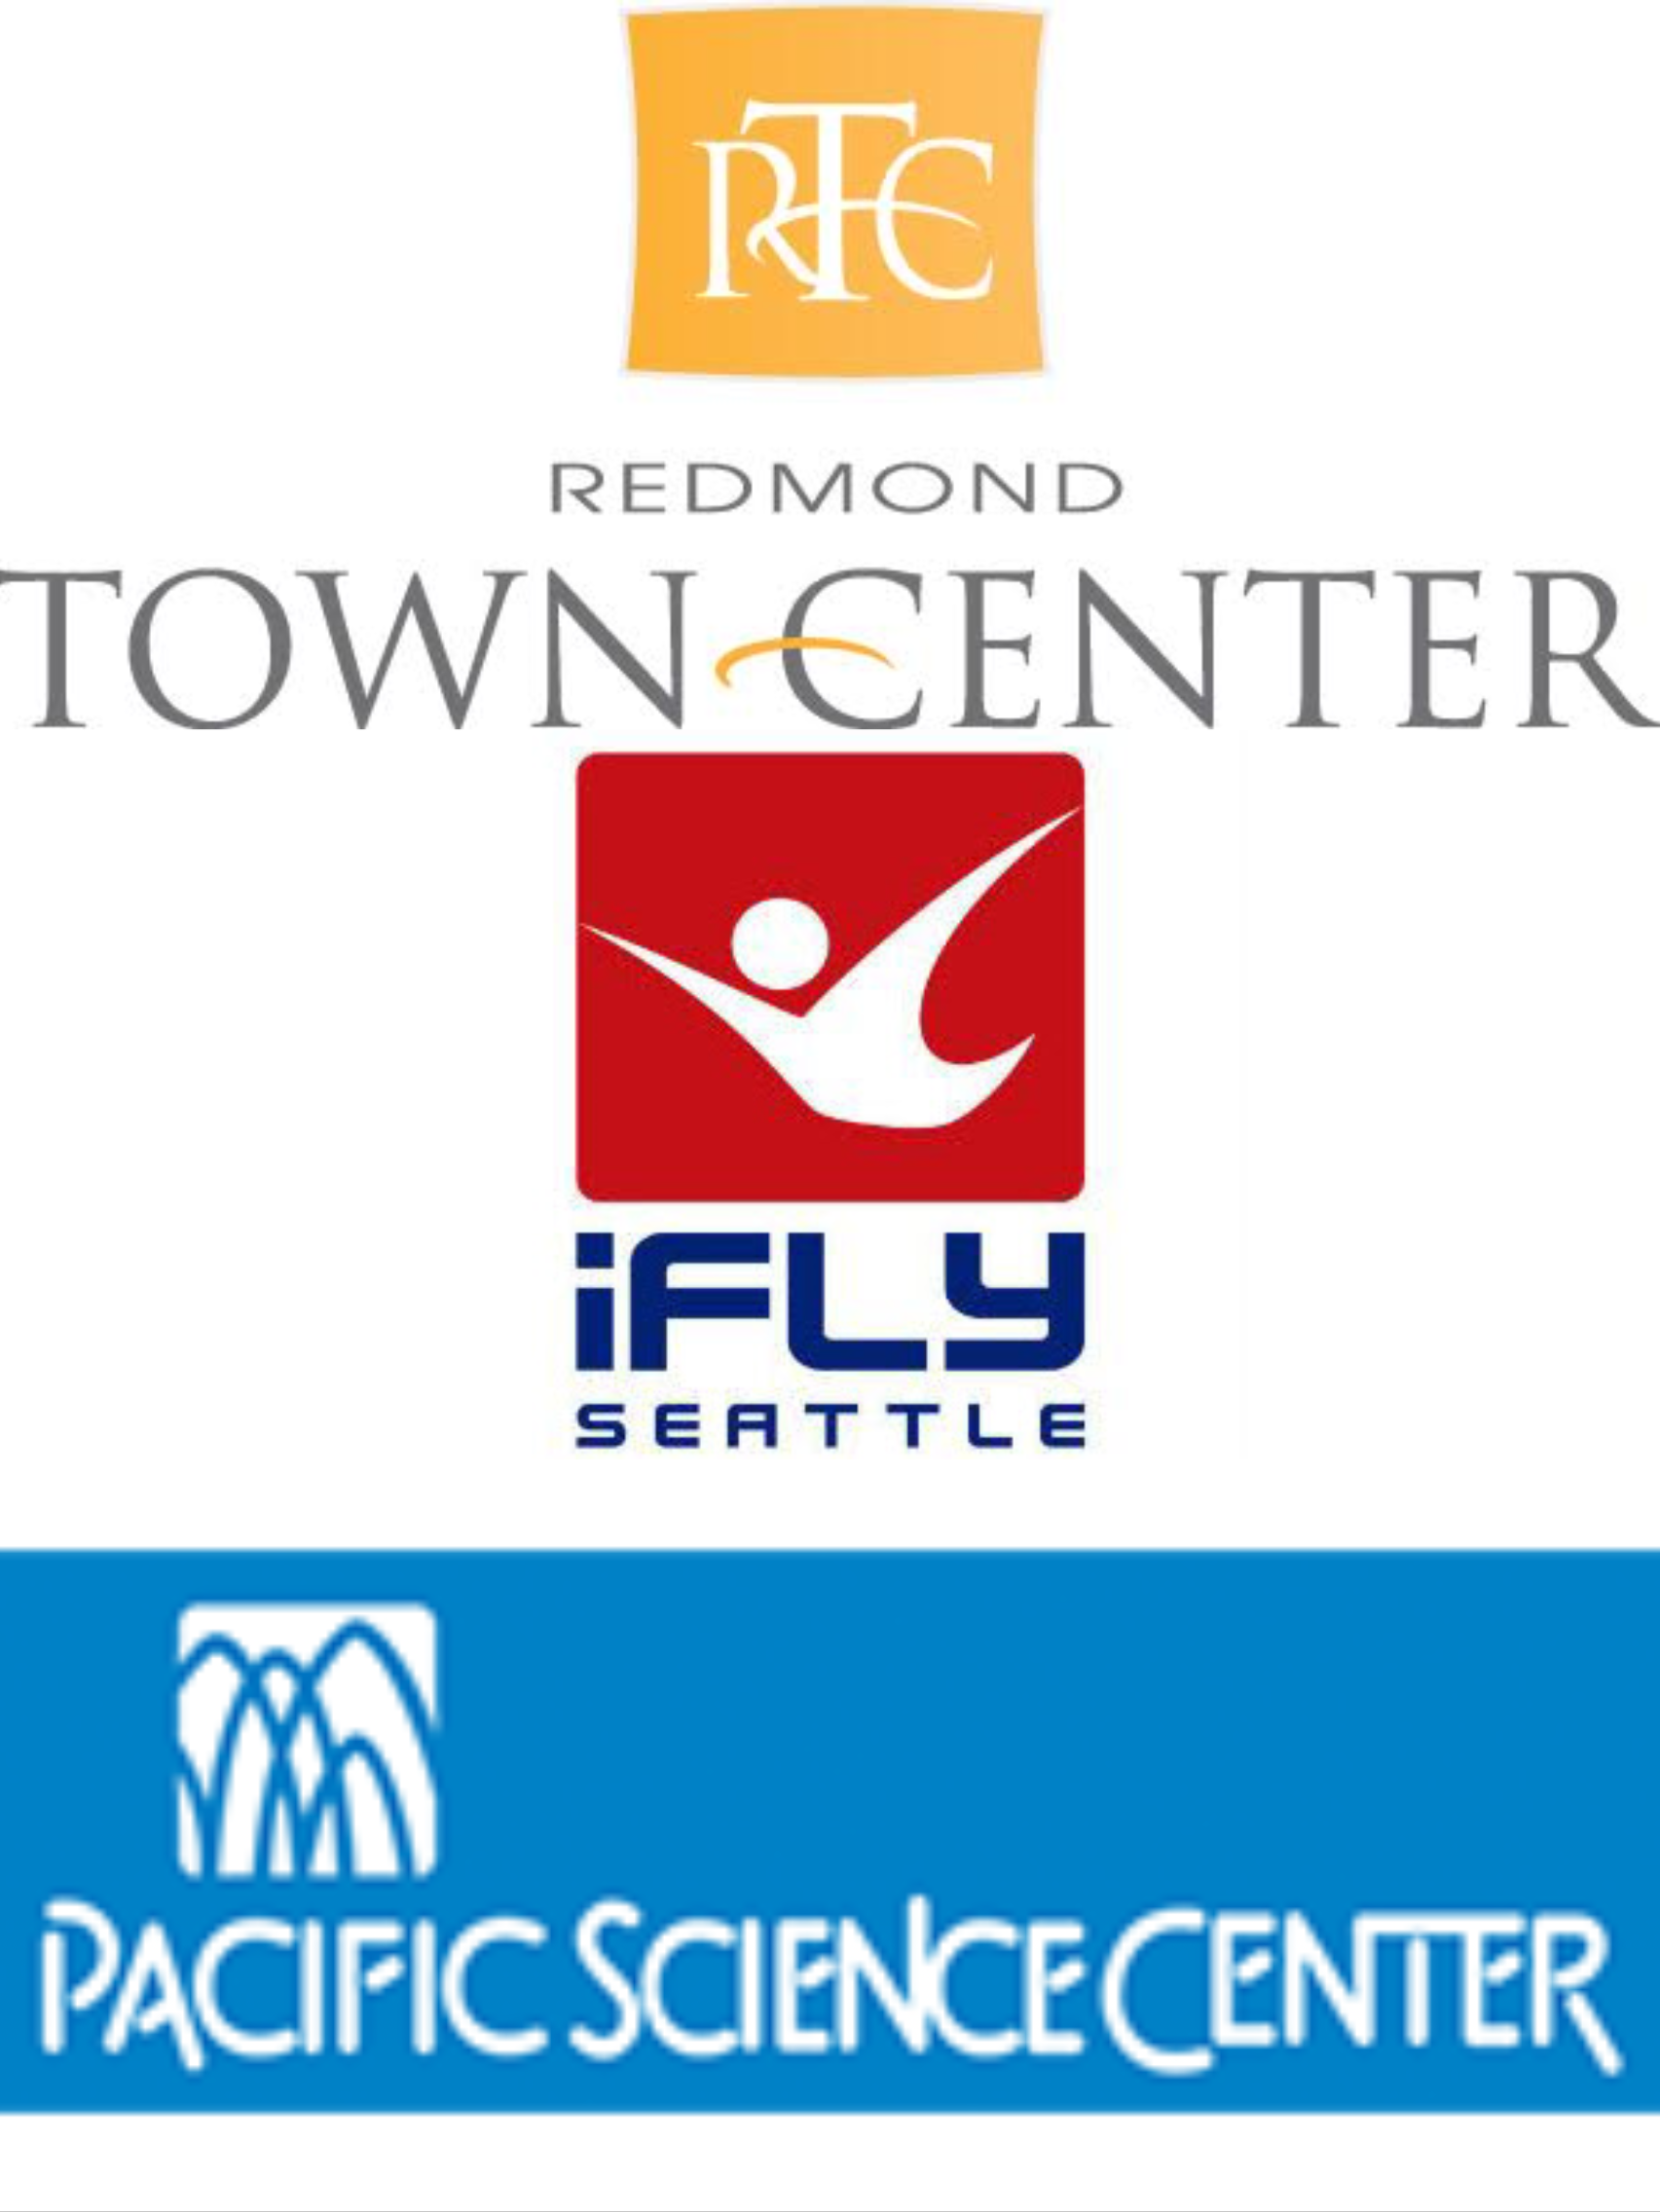 Prizes iFly, Pacific Science Center, Redmond Town Center Eggstravaganza